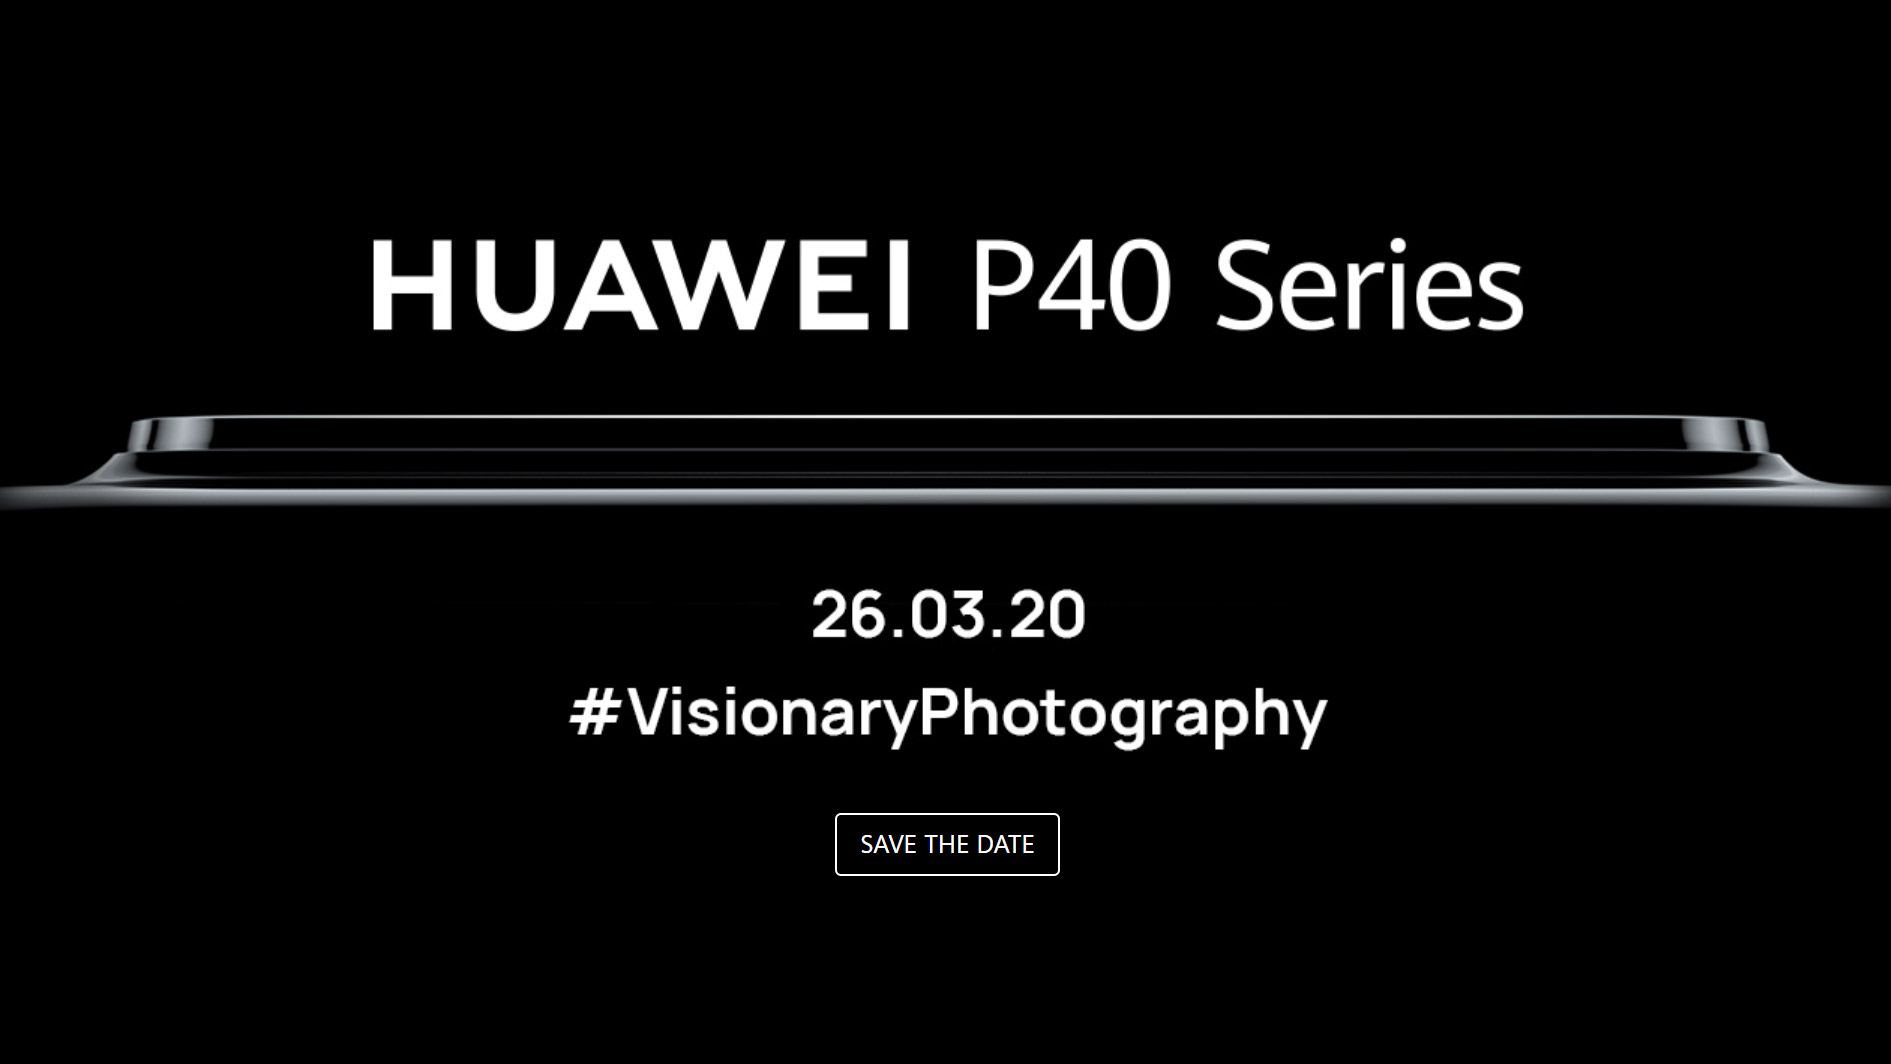 Huawei P40 launch event teaser suggests it's another phone dedicated to photography